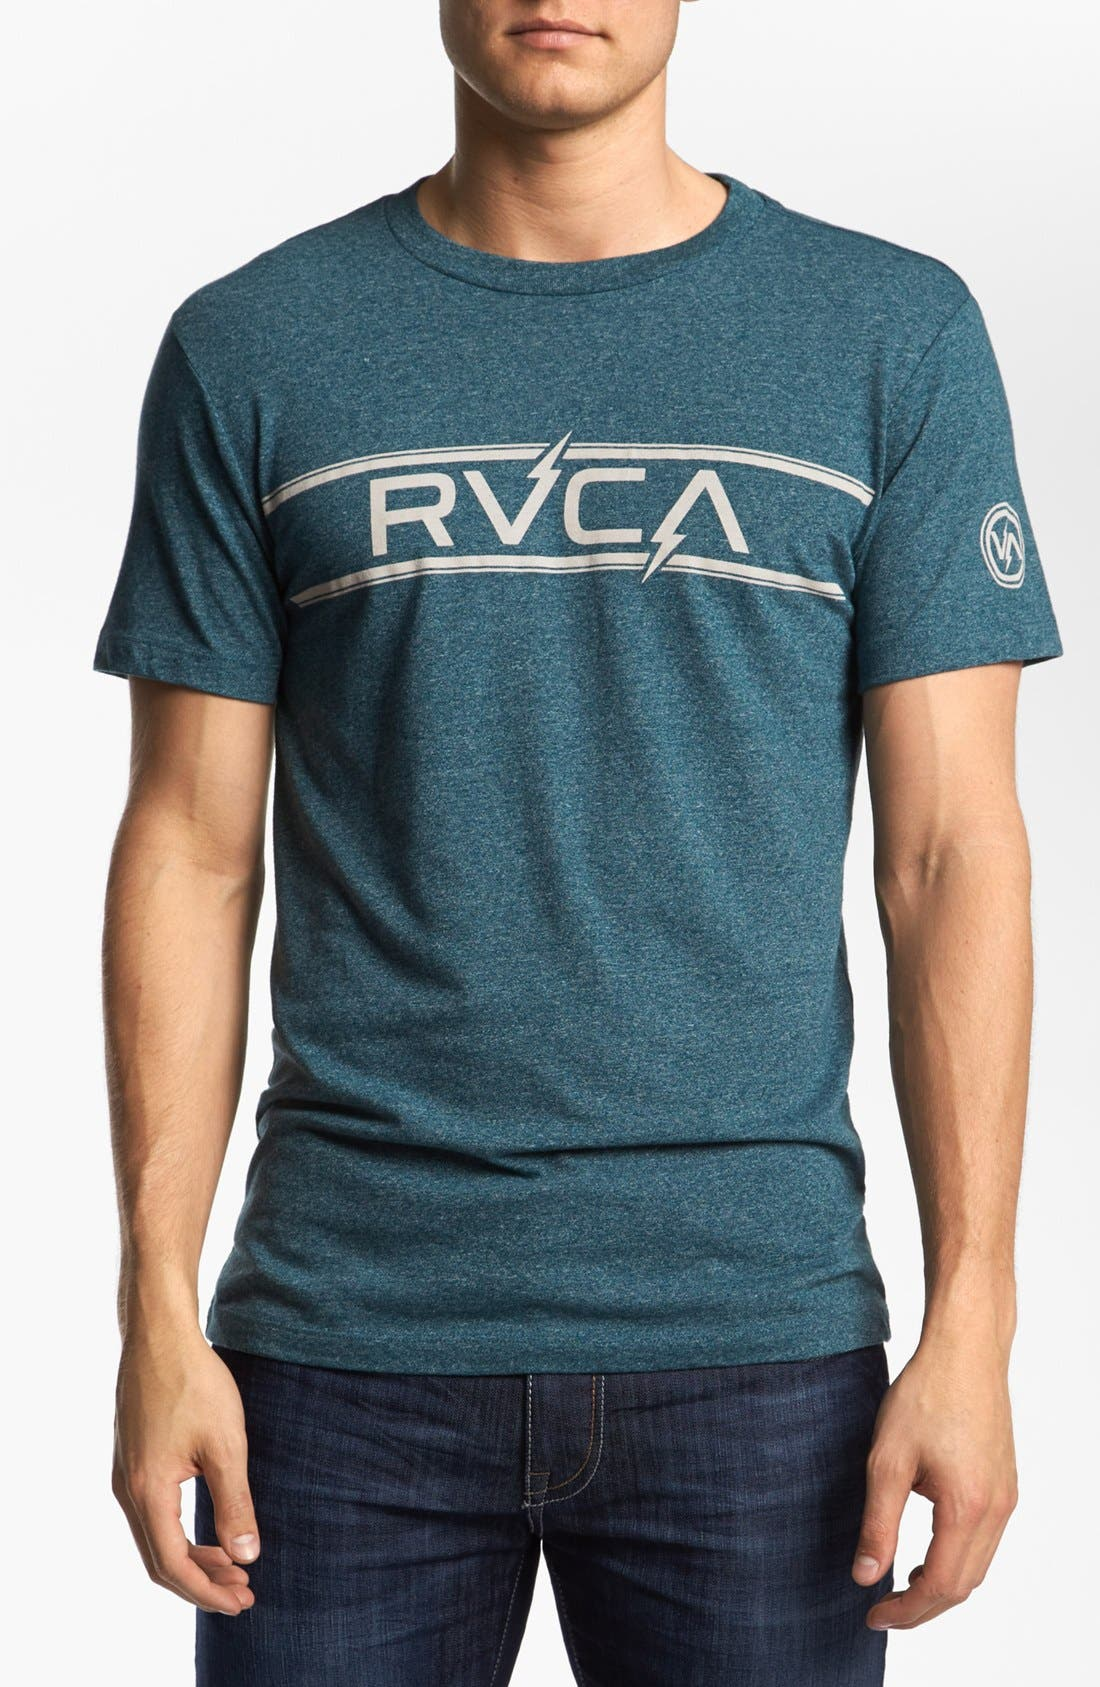 Alternate Image 1 Selected - RVCA 'Bolts' T-Shirt